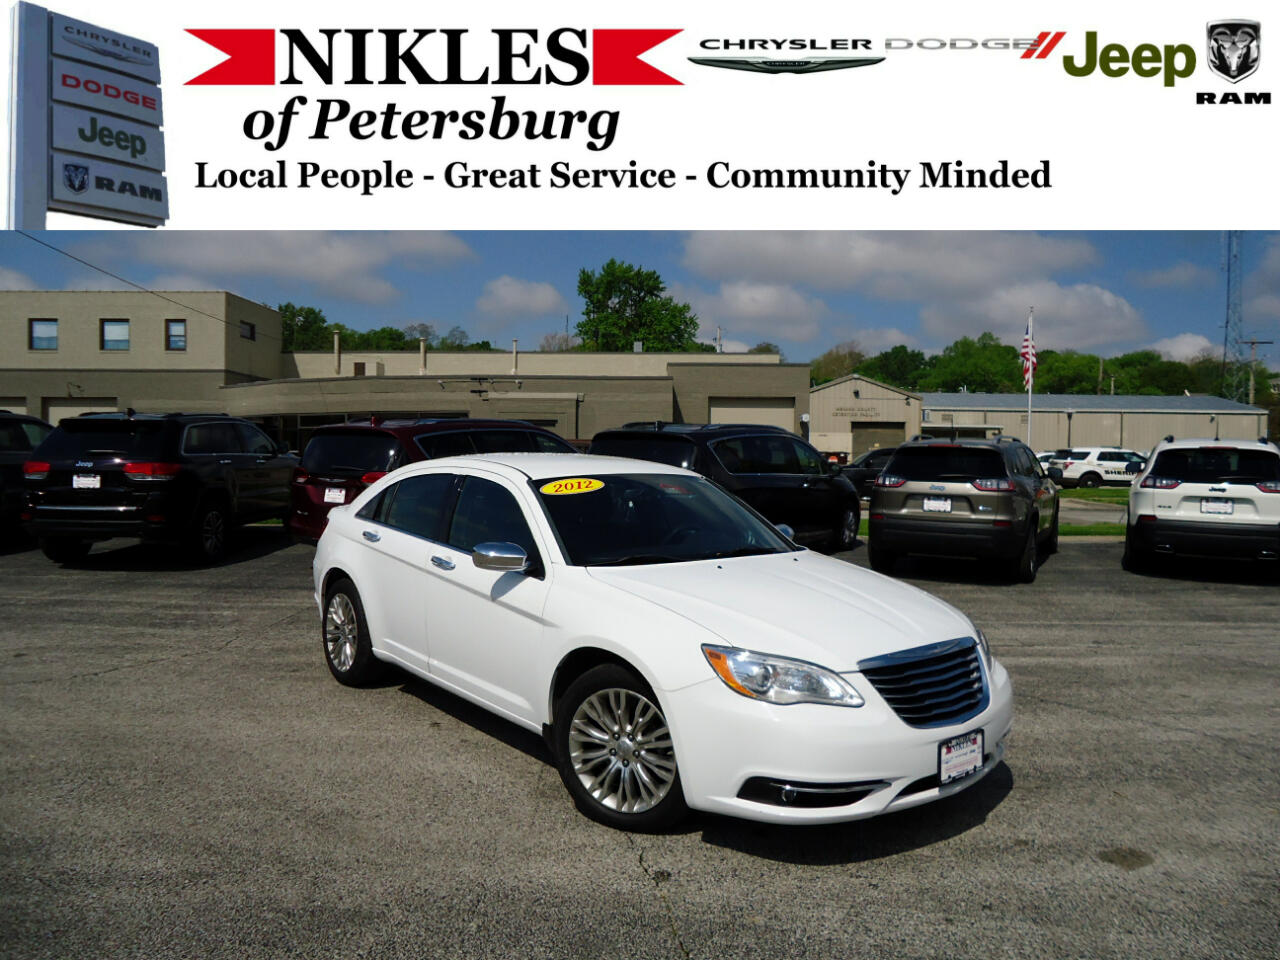 2012 Chrysler 200 4dr Sdn Limited FWD